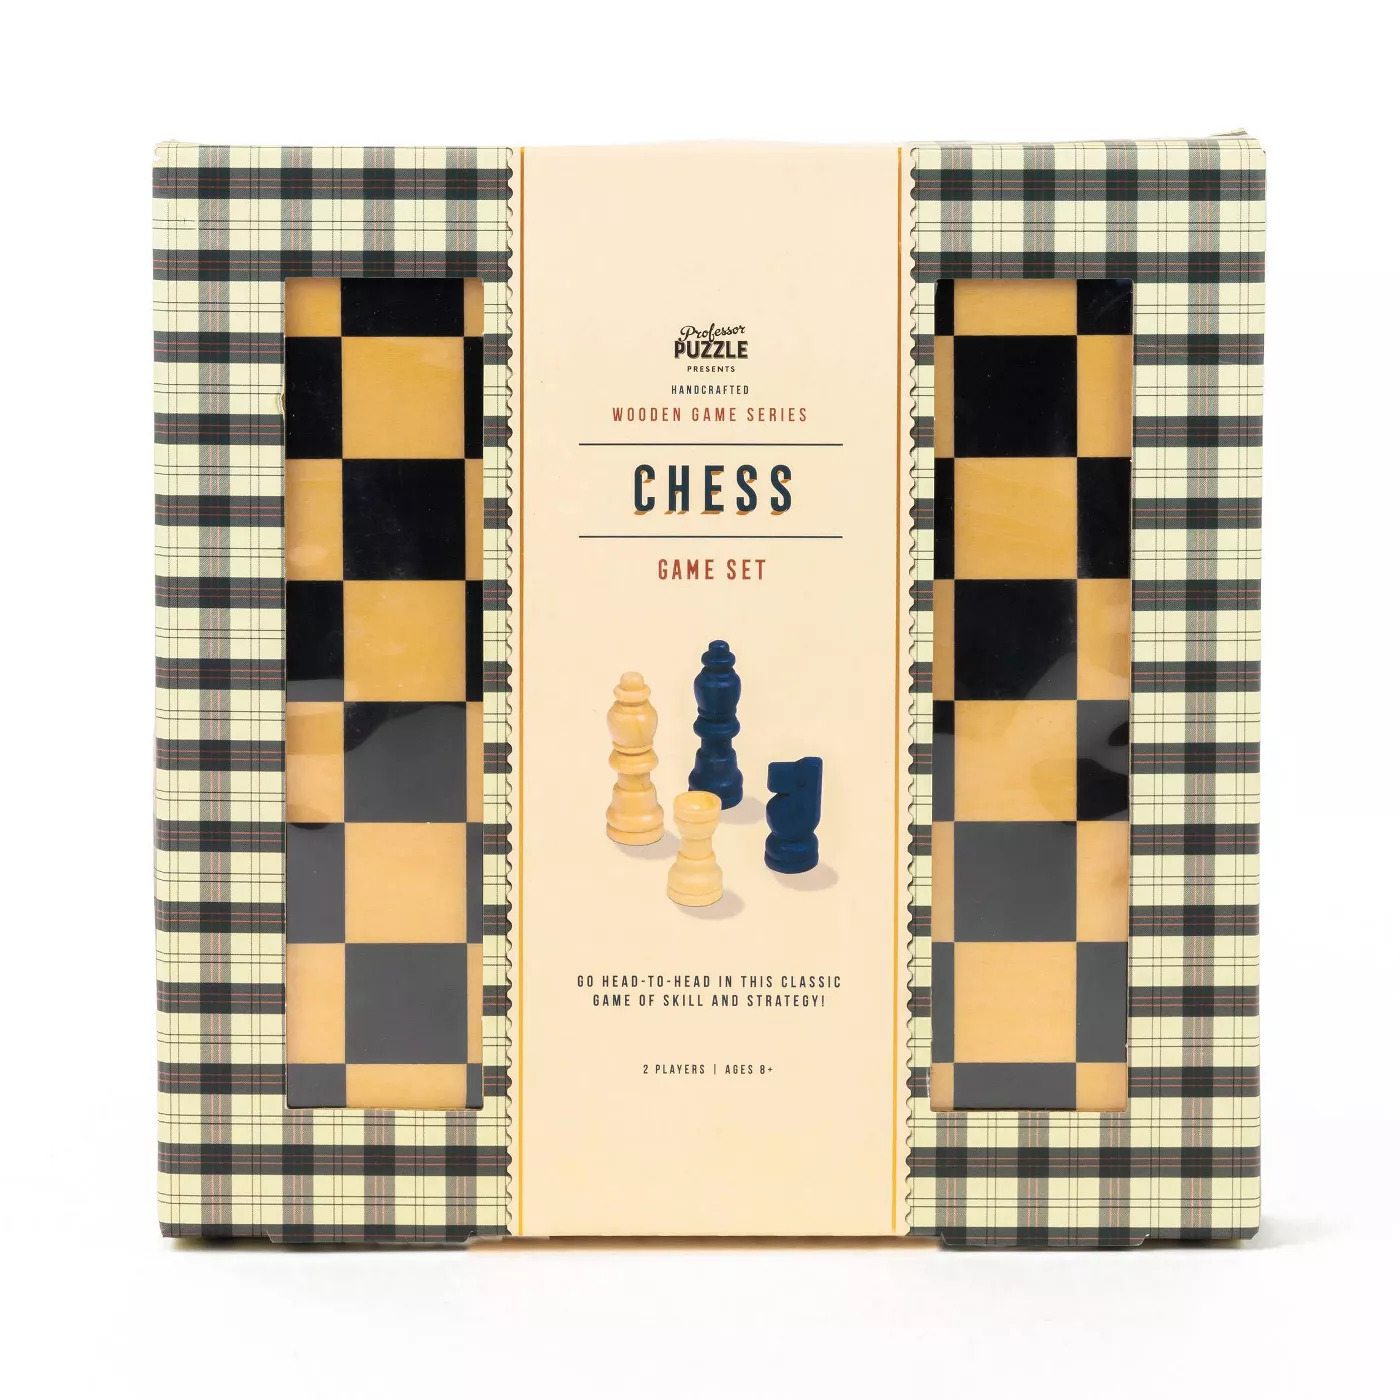 Game of Chess from Target